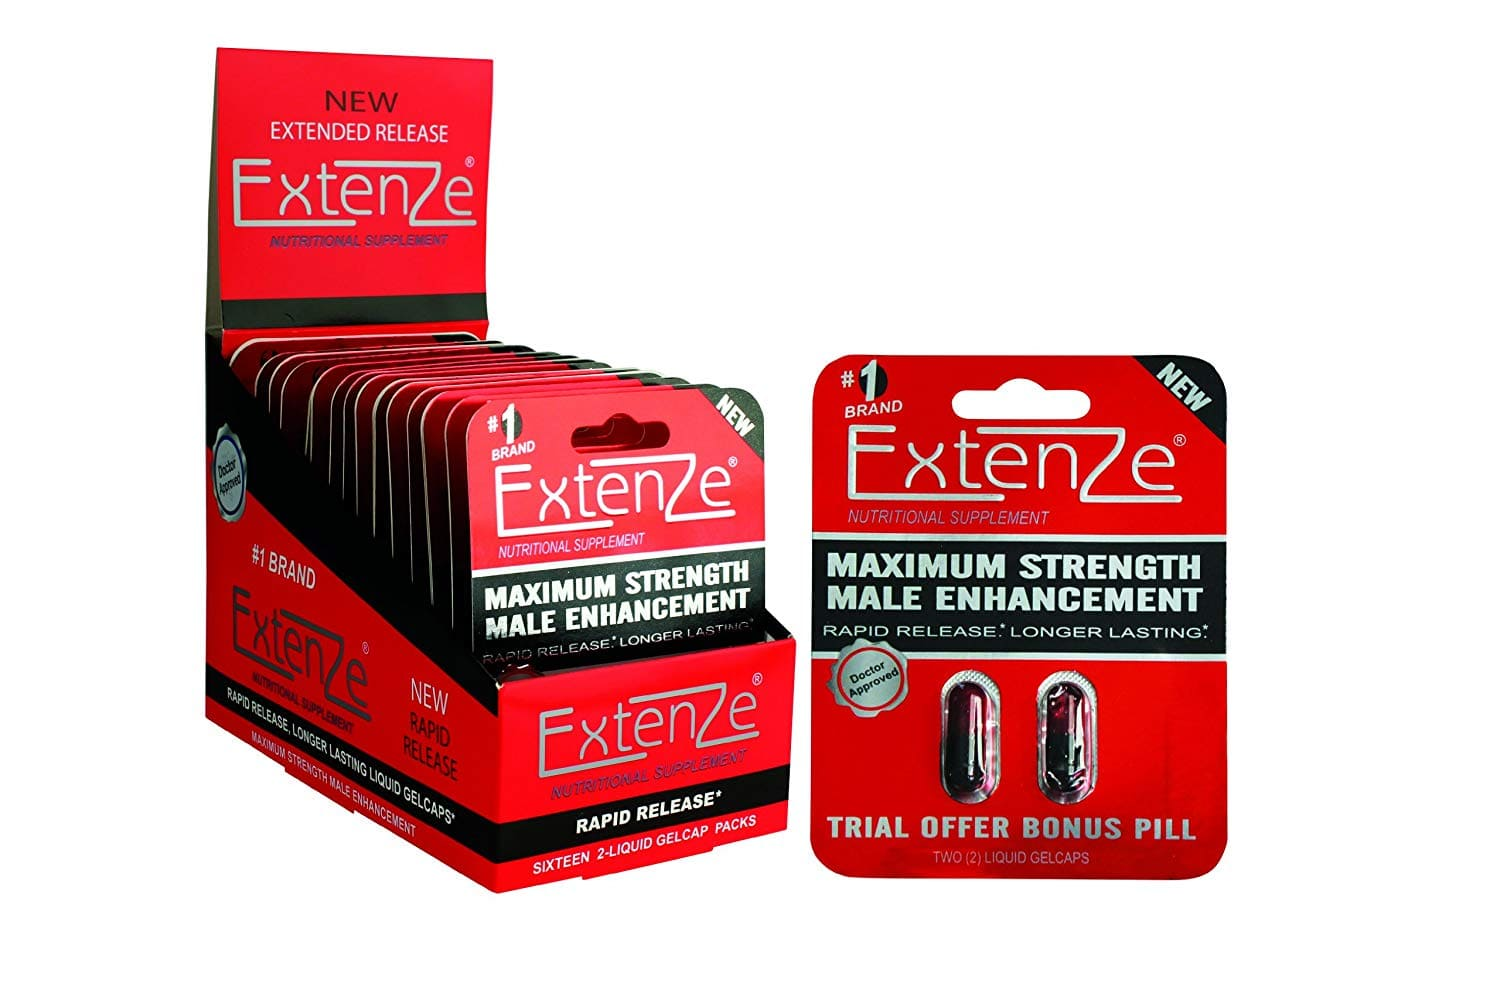 boxing day Extenze Male Enhancement Pills deals